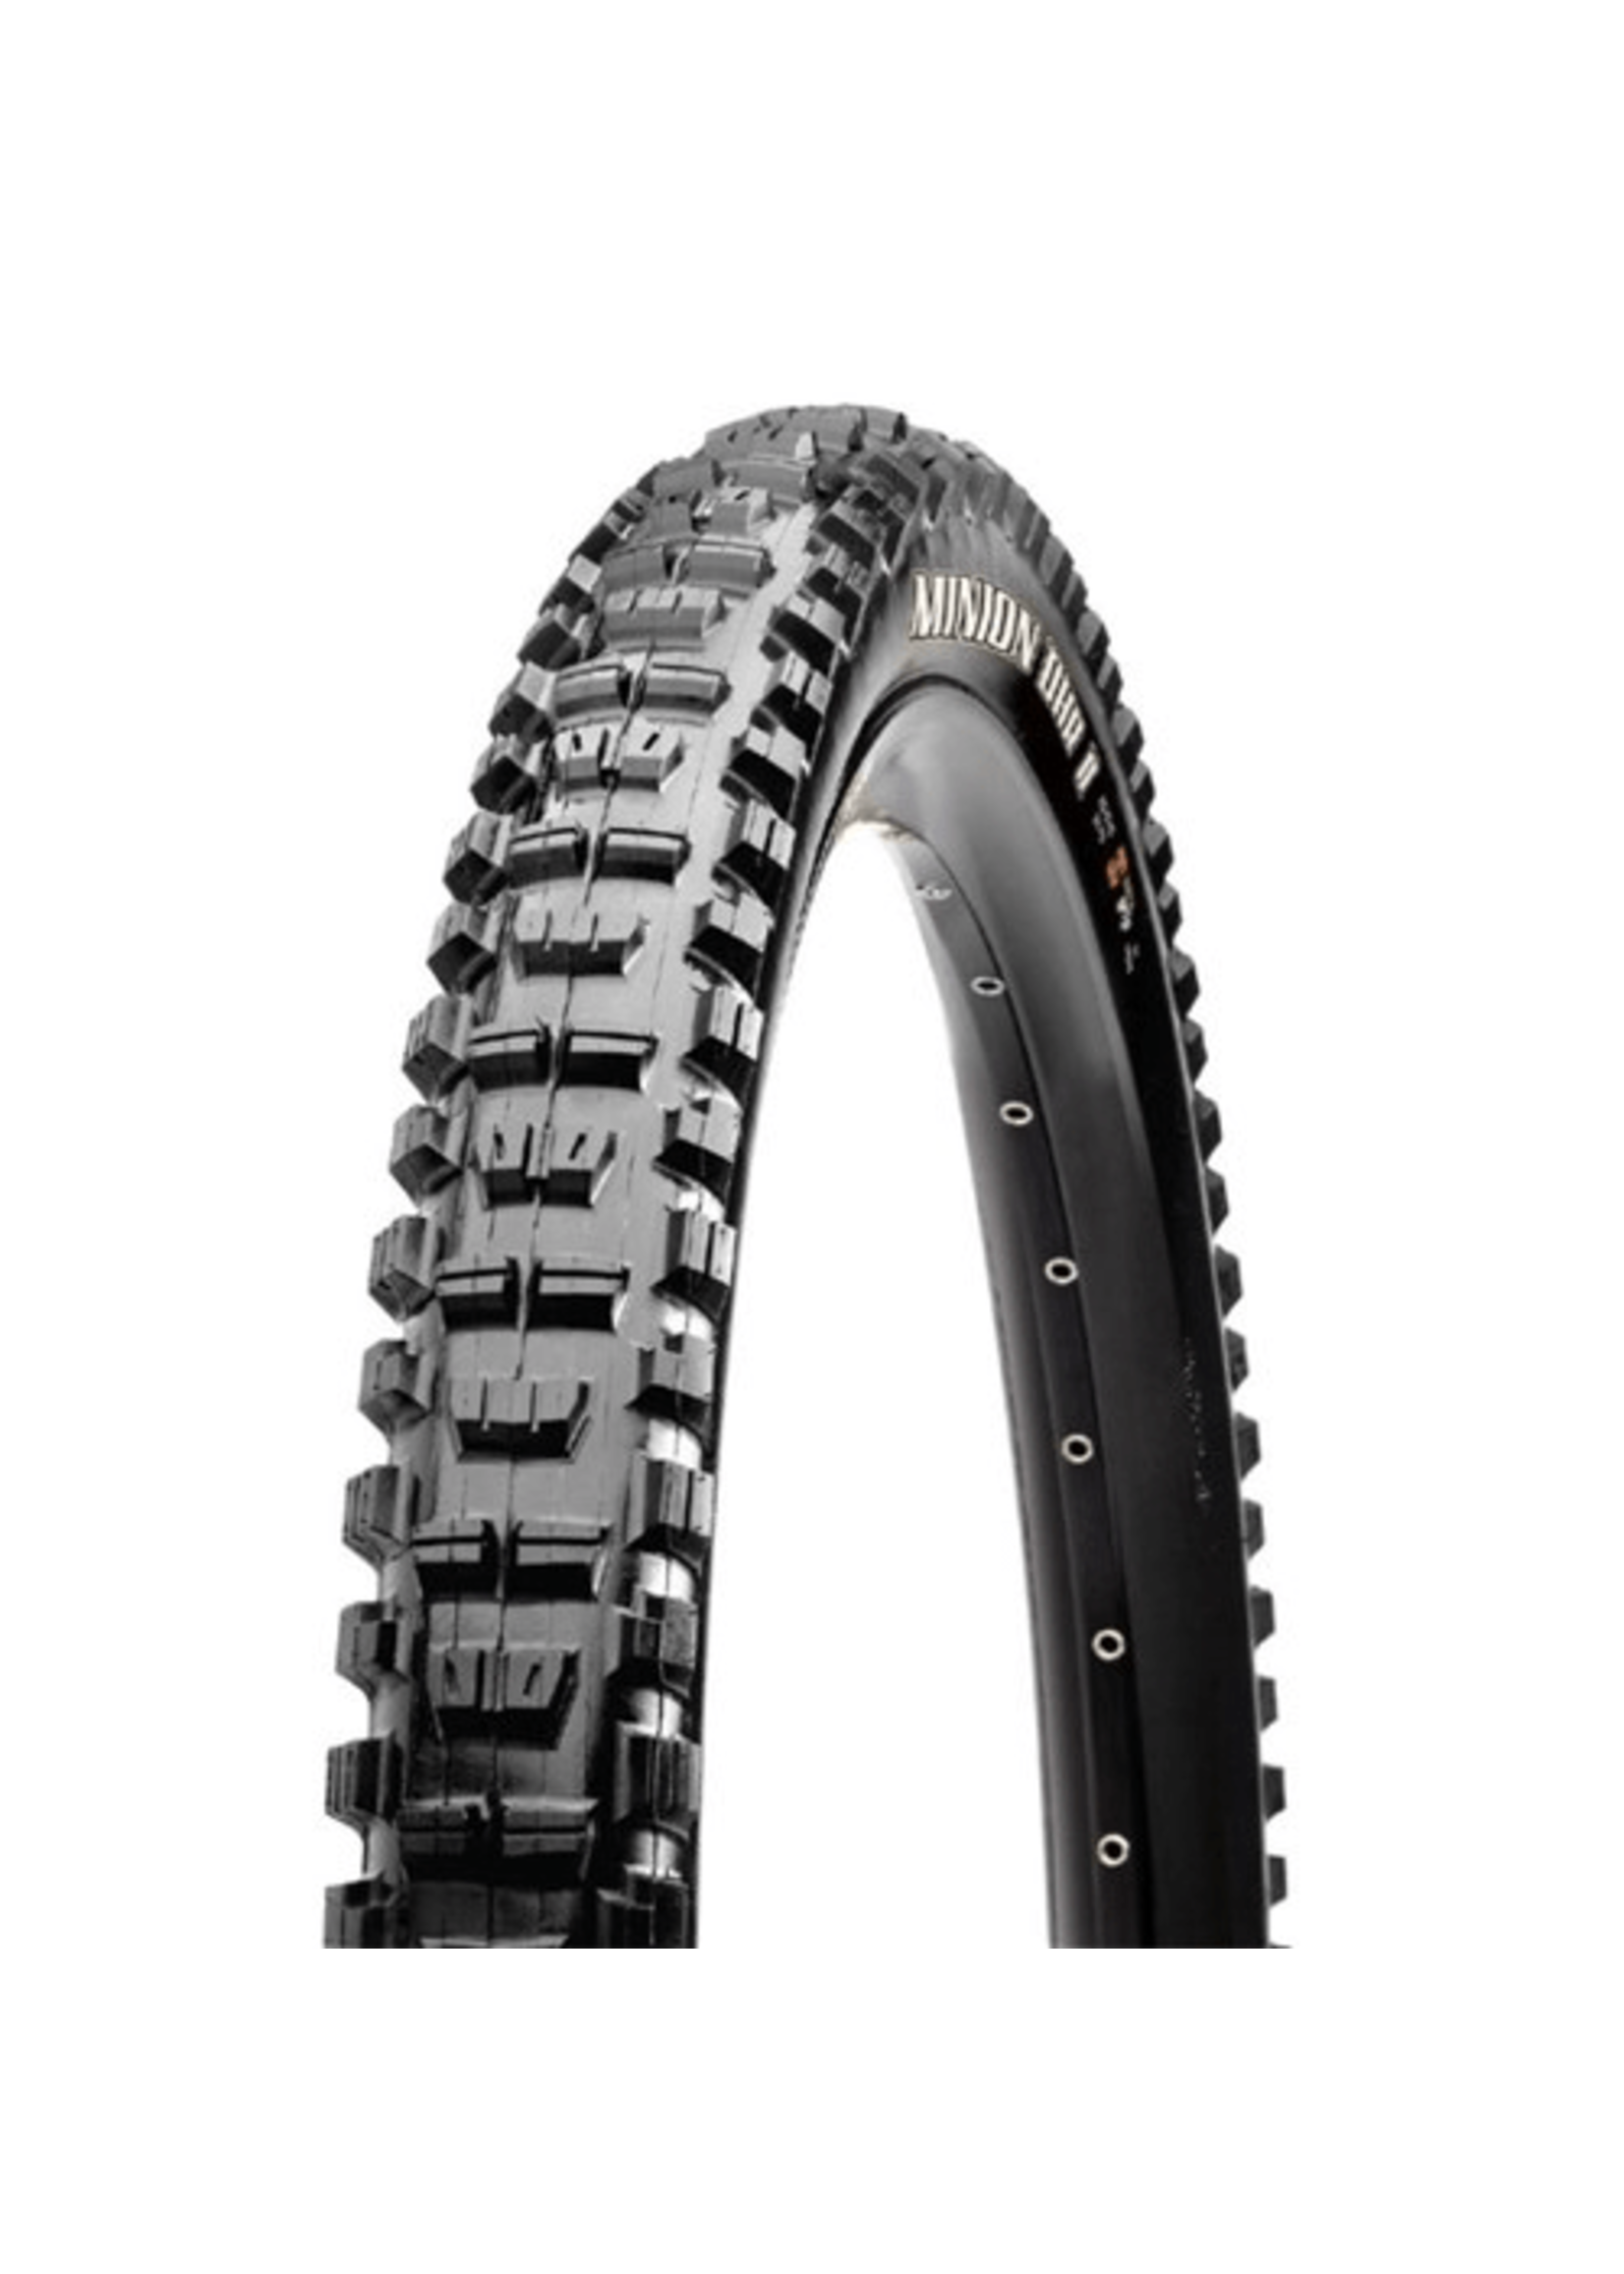 Maxxis Maxxis, Minion DHR2, Tire, 29''x2.40, Folding, Tubeless Ready, 3C Maxx Grip, Double Down, Wide Trail, 120x2TPI, Black